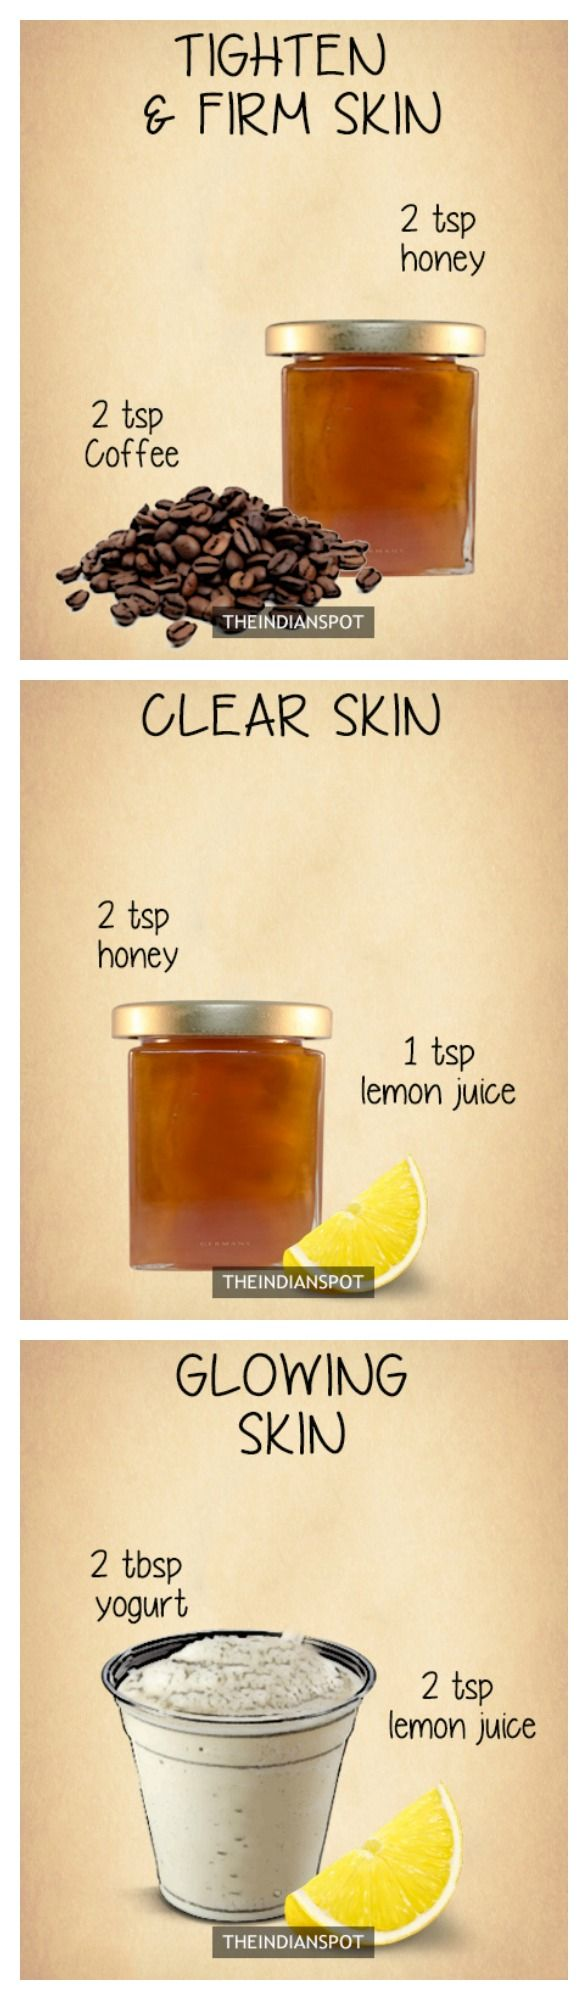 10 Amazing 2 ingredients all natural homemade face masks - THEINDIANSPOT - Page…